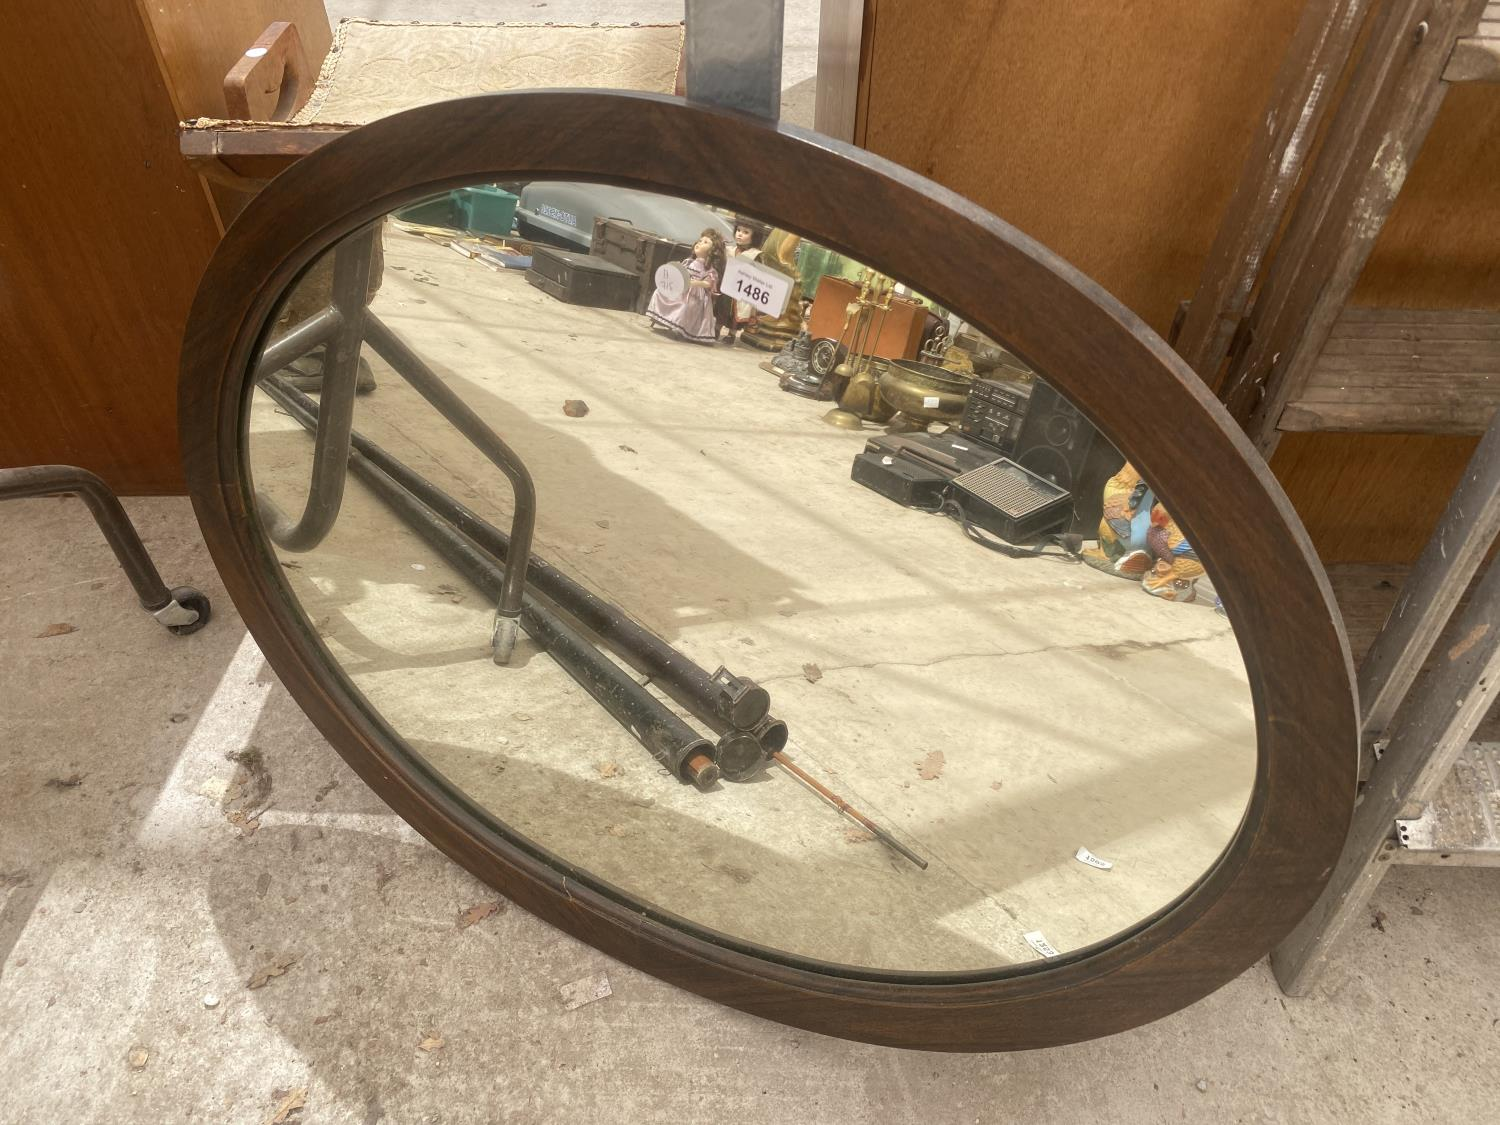 A WOODEN FRAMED OVAL MIRROR